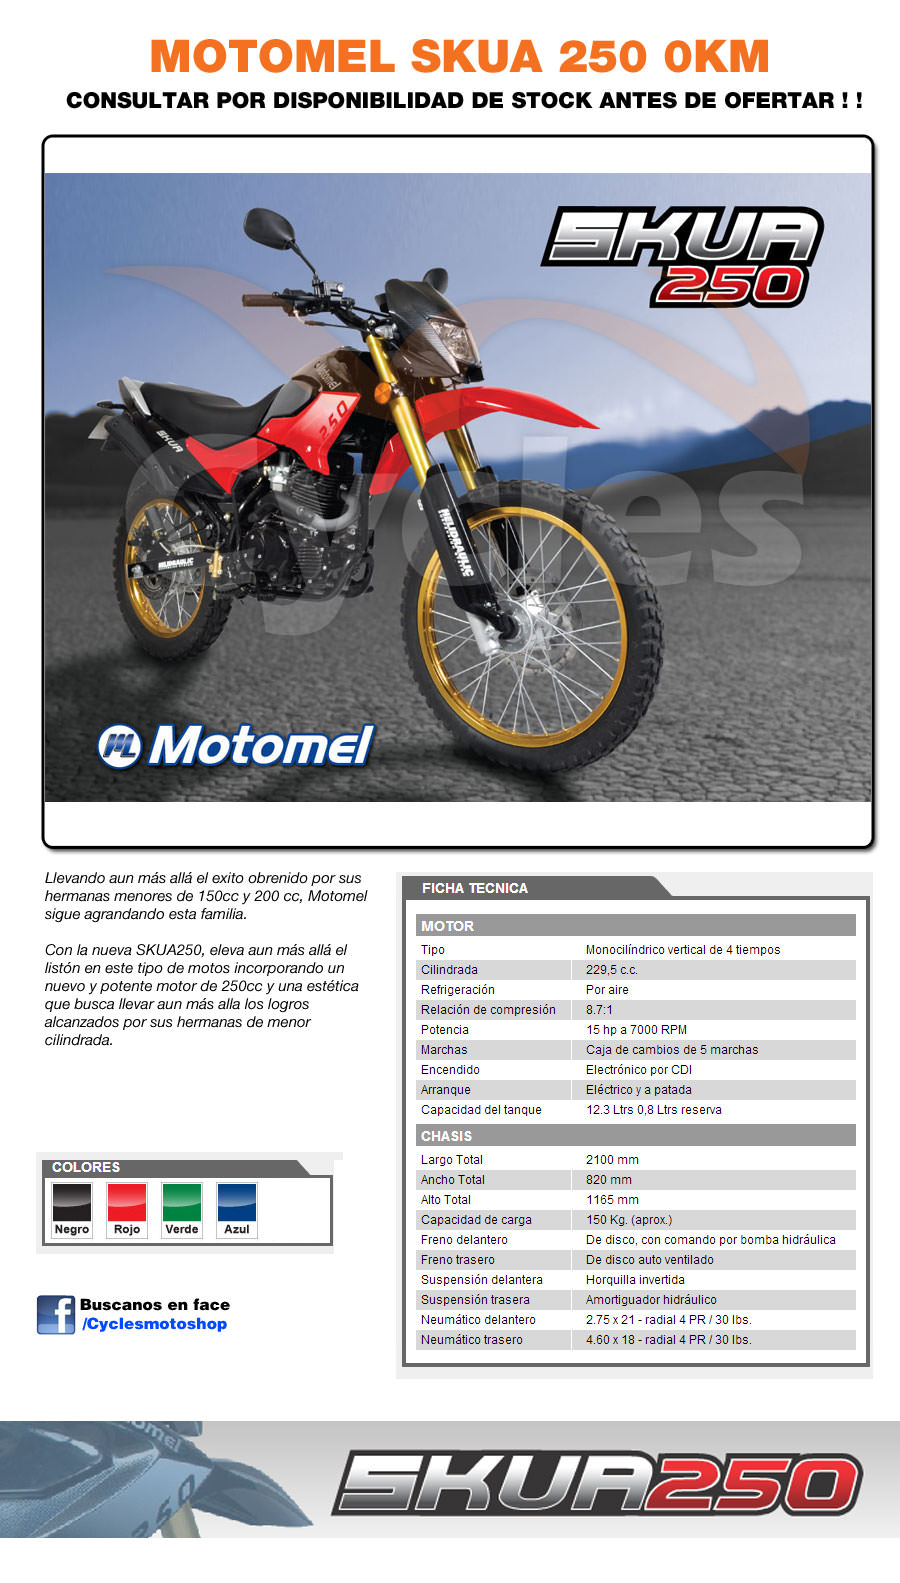 Motomel Skua 250 - Cycles Motoshop